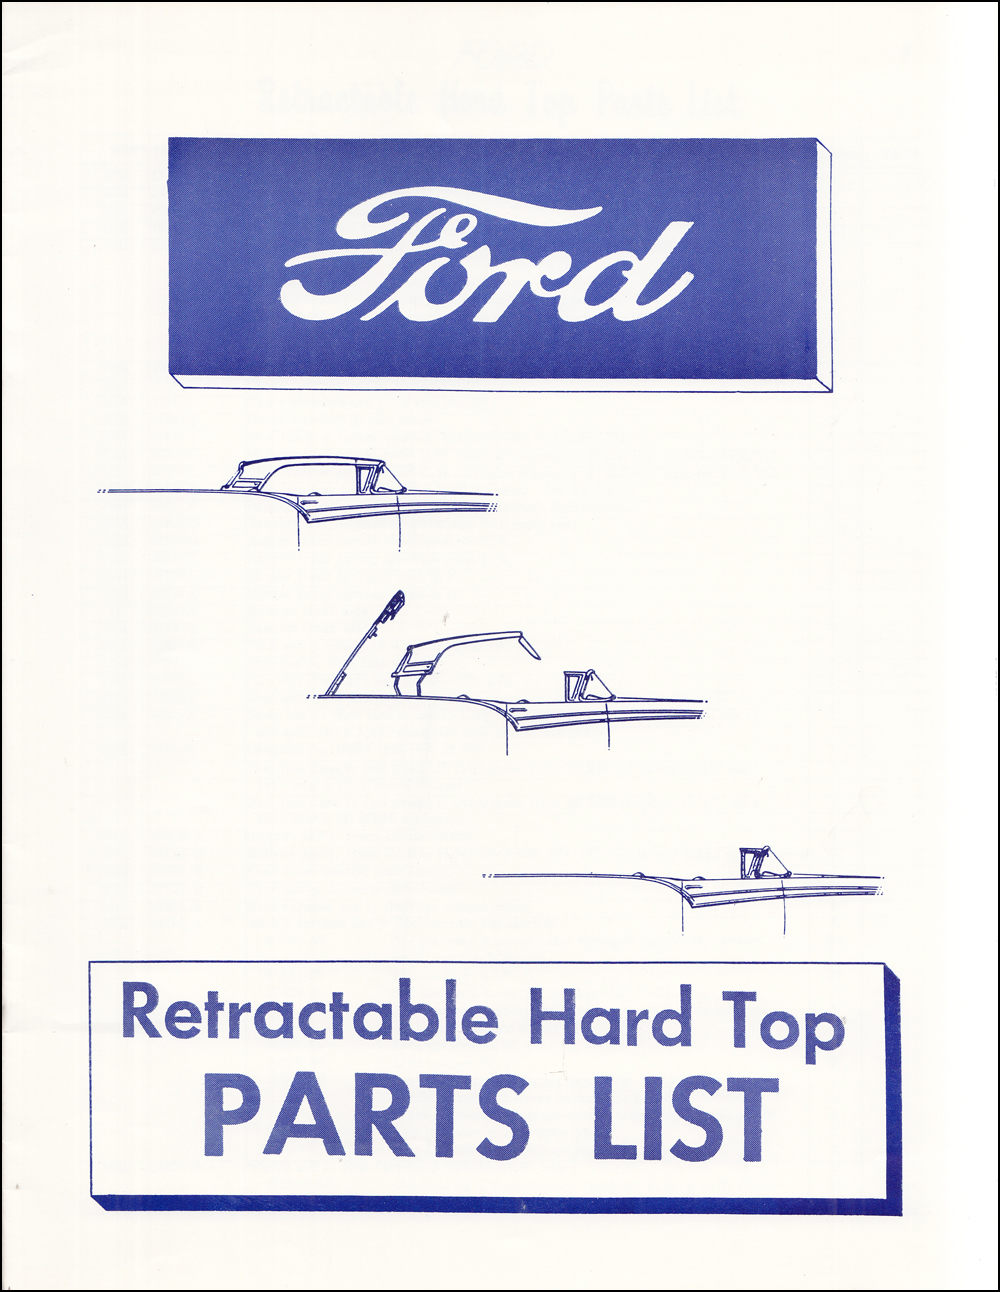 1957 Ford Skyliner Retractable Hard Top Parts Book Reprint